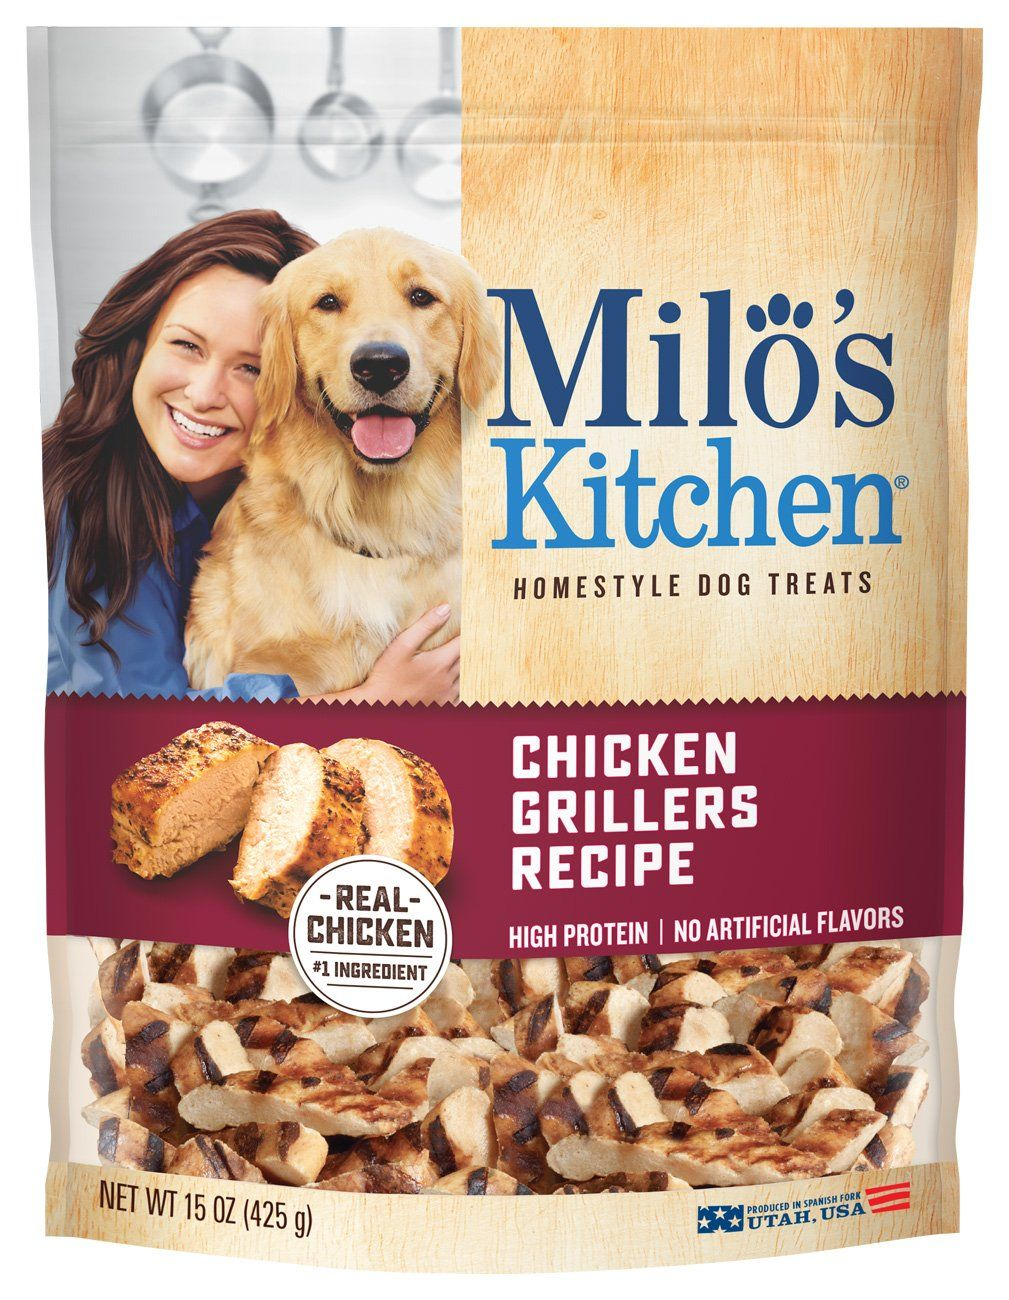 Small Dog Bed Milos Kitchen Chicken Grillers Recipe Dog Treats